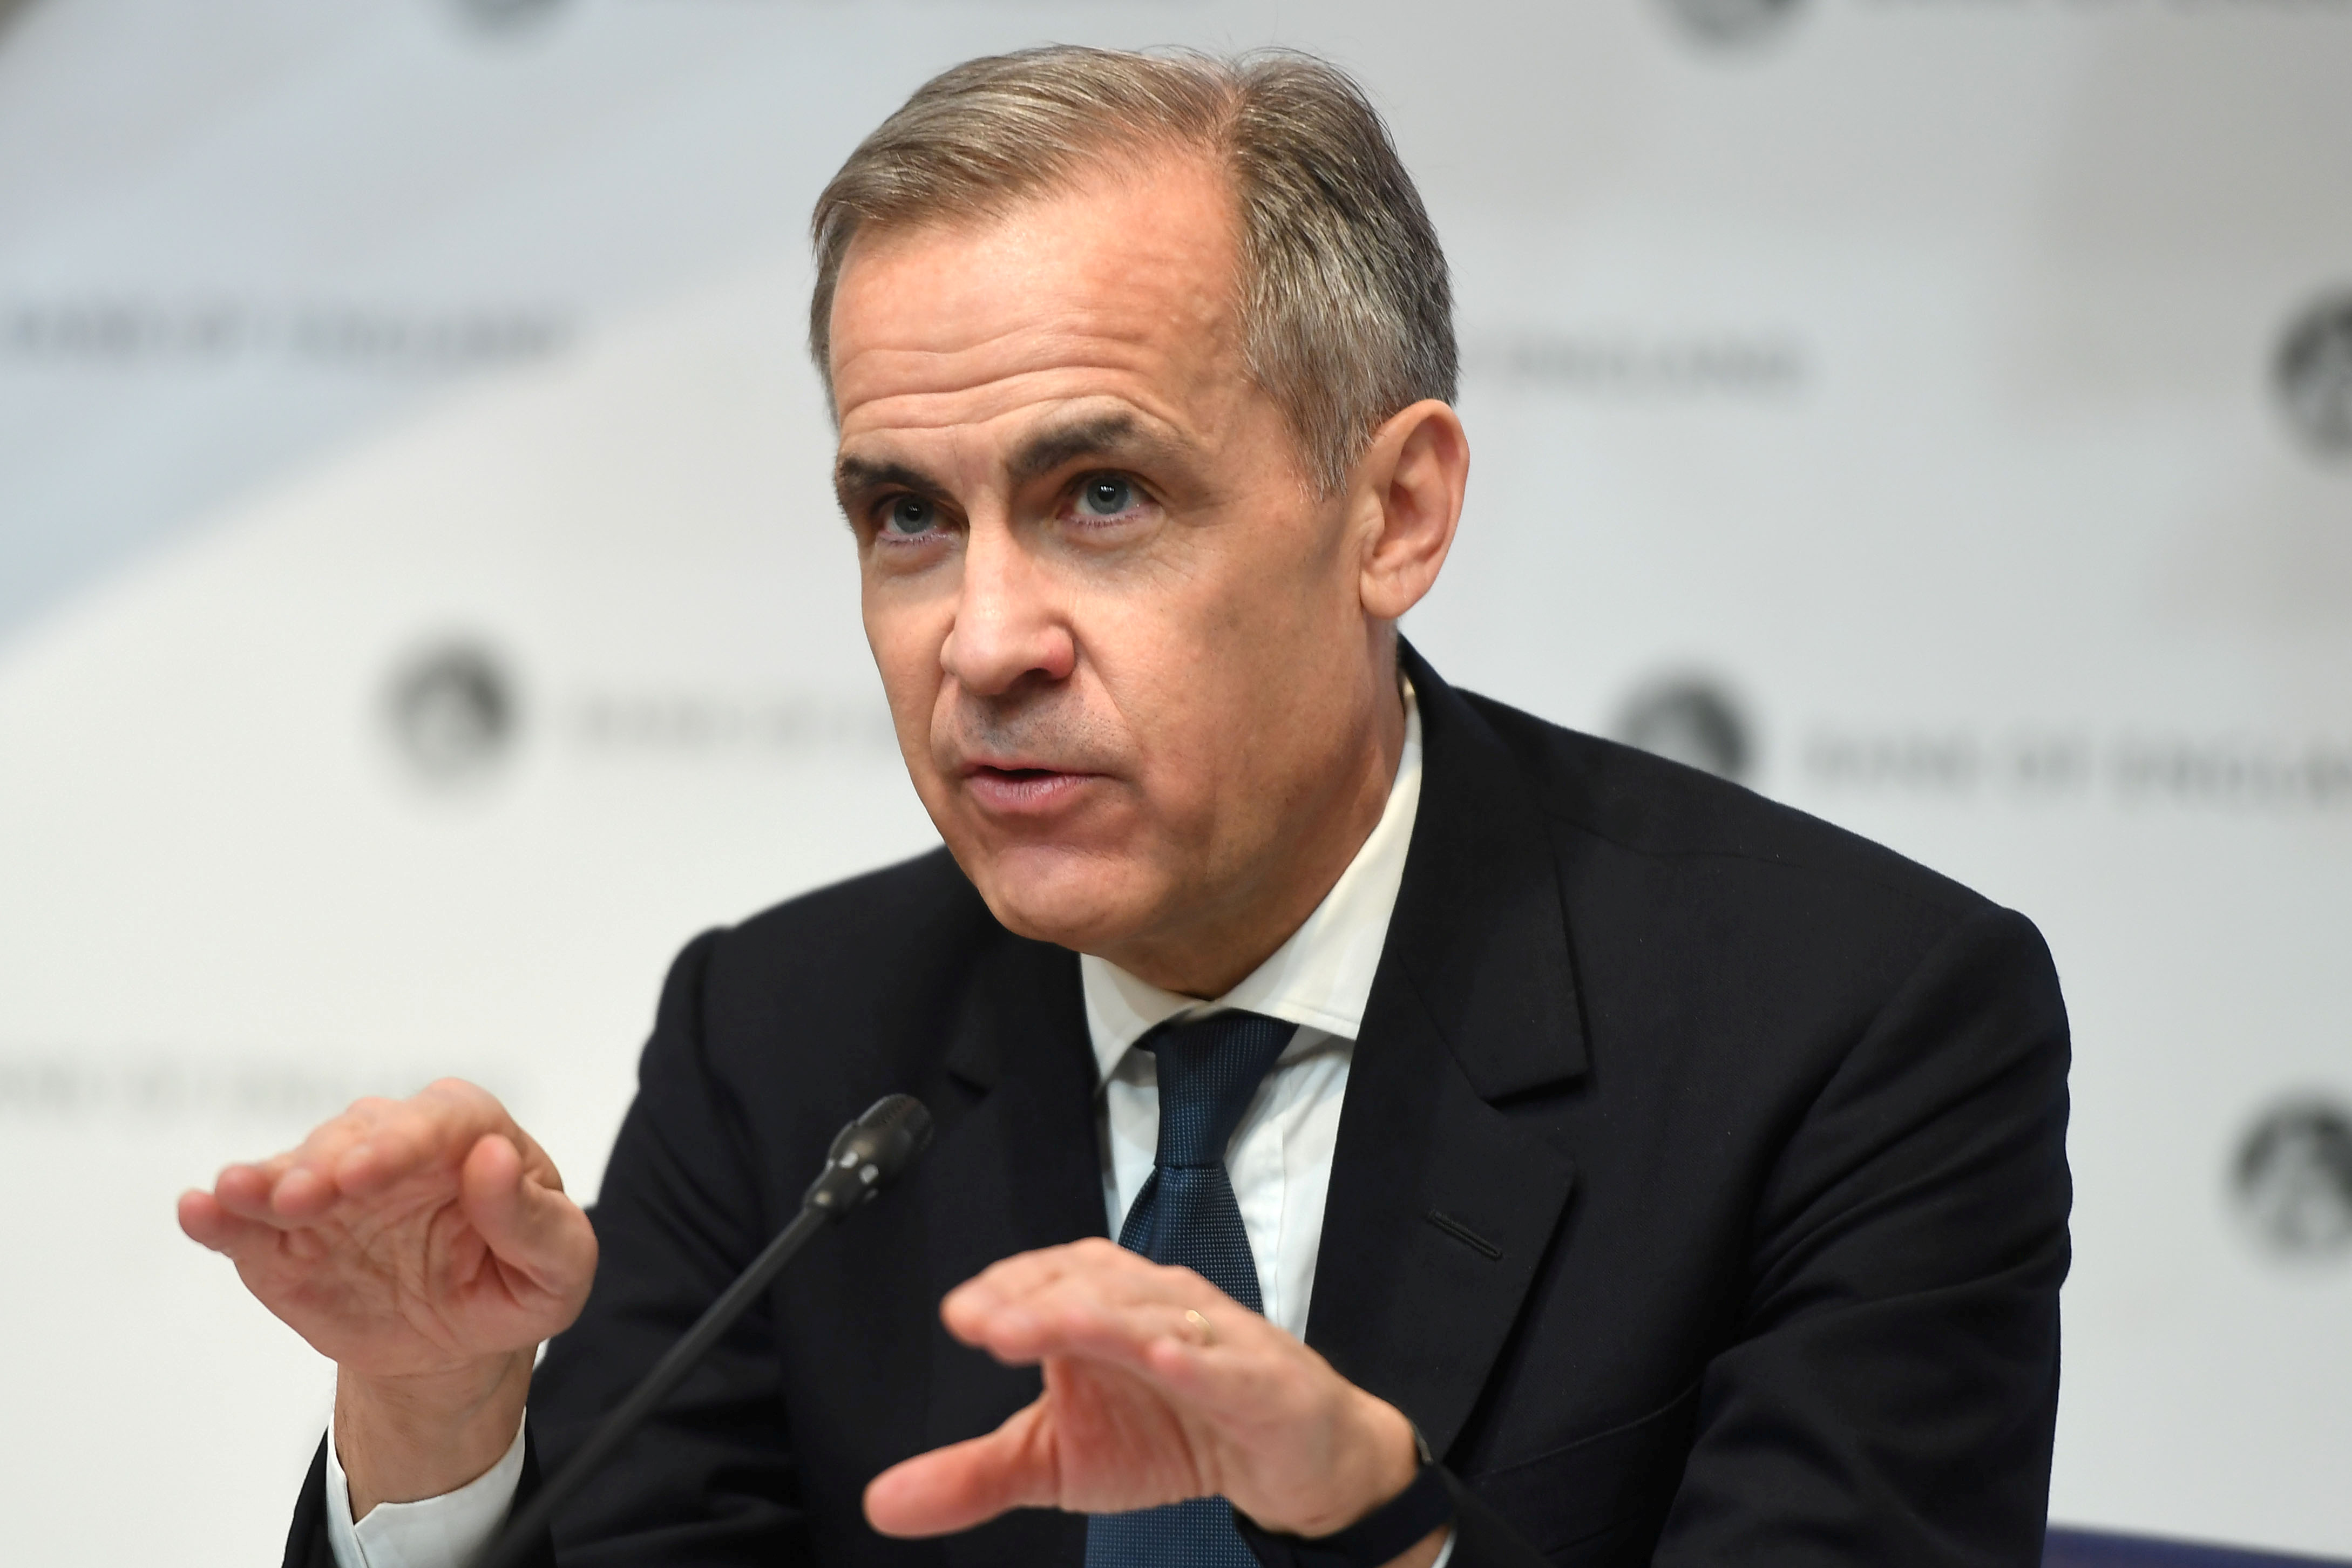 Mark Carney, Governor of the Bank of England (BOE) attends a news conference at Bank Of England in London, Britain March 11, 2020. Peter Summers/Pool via REUTERS